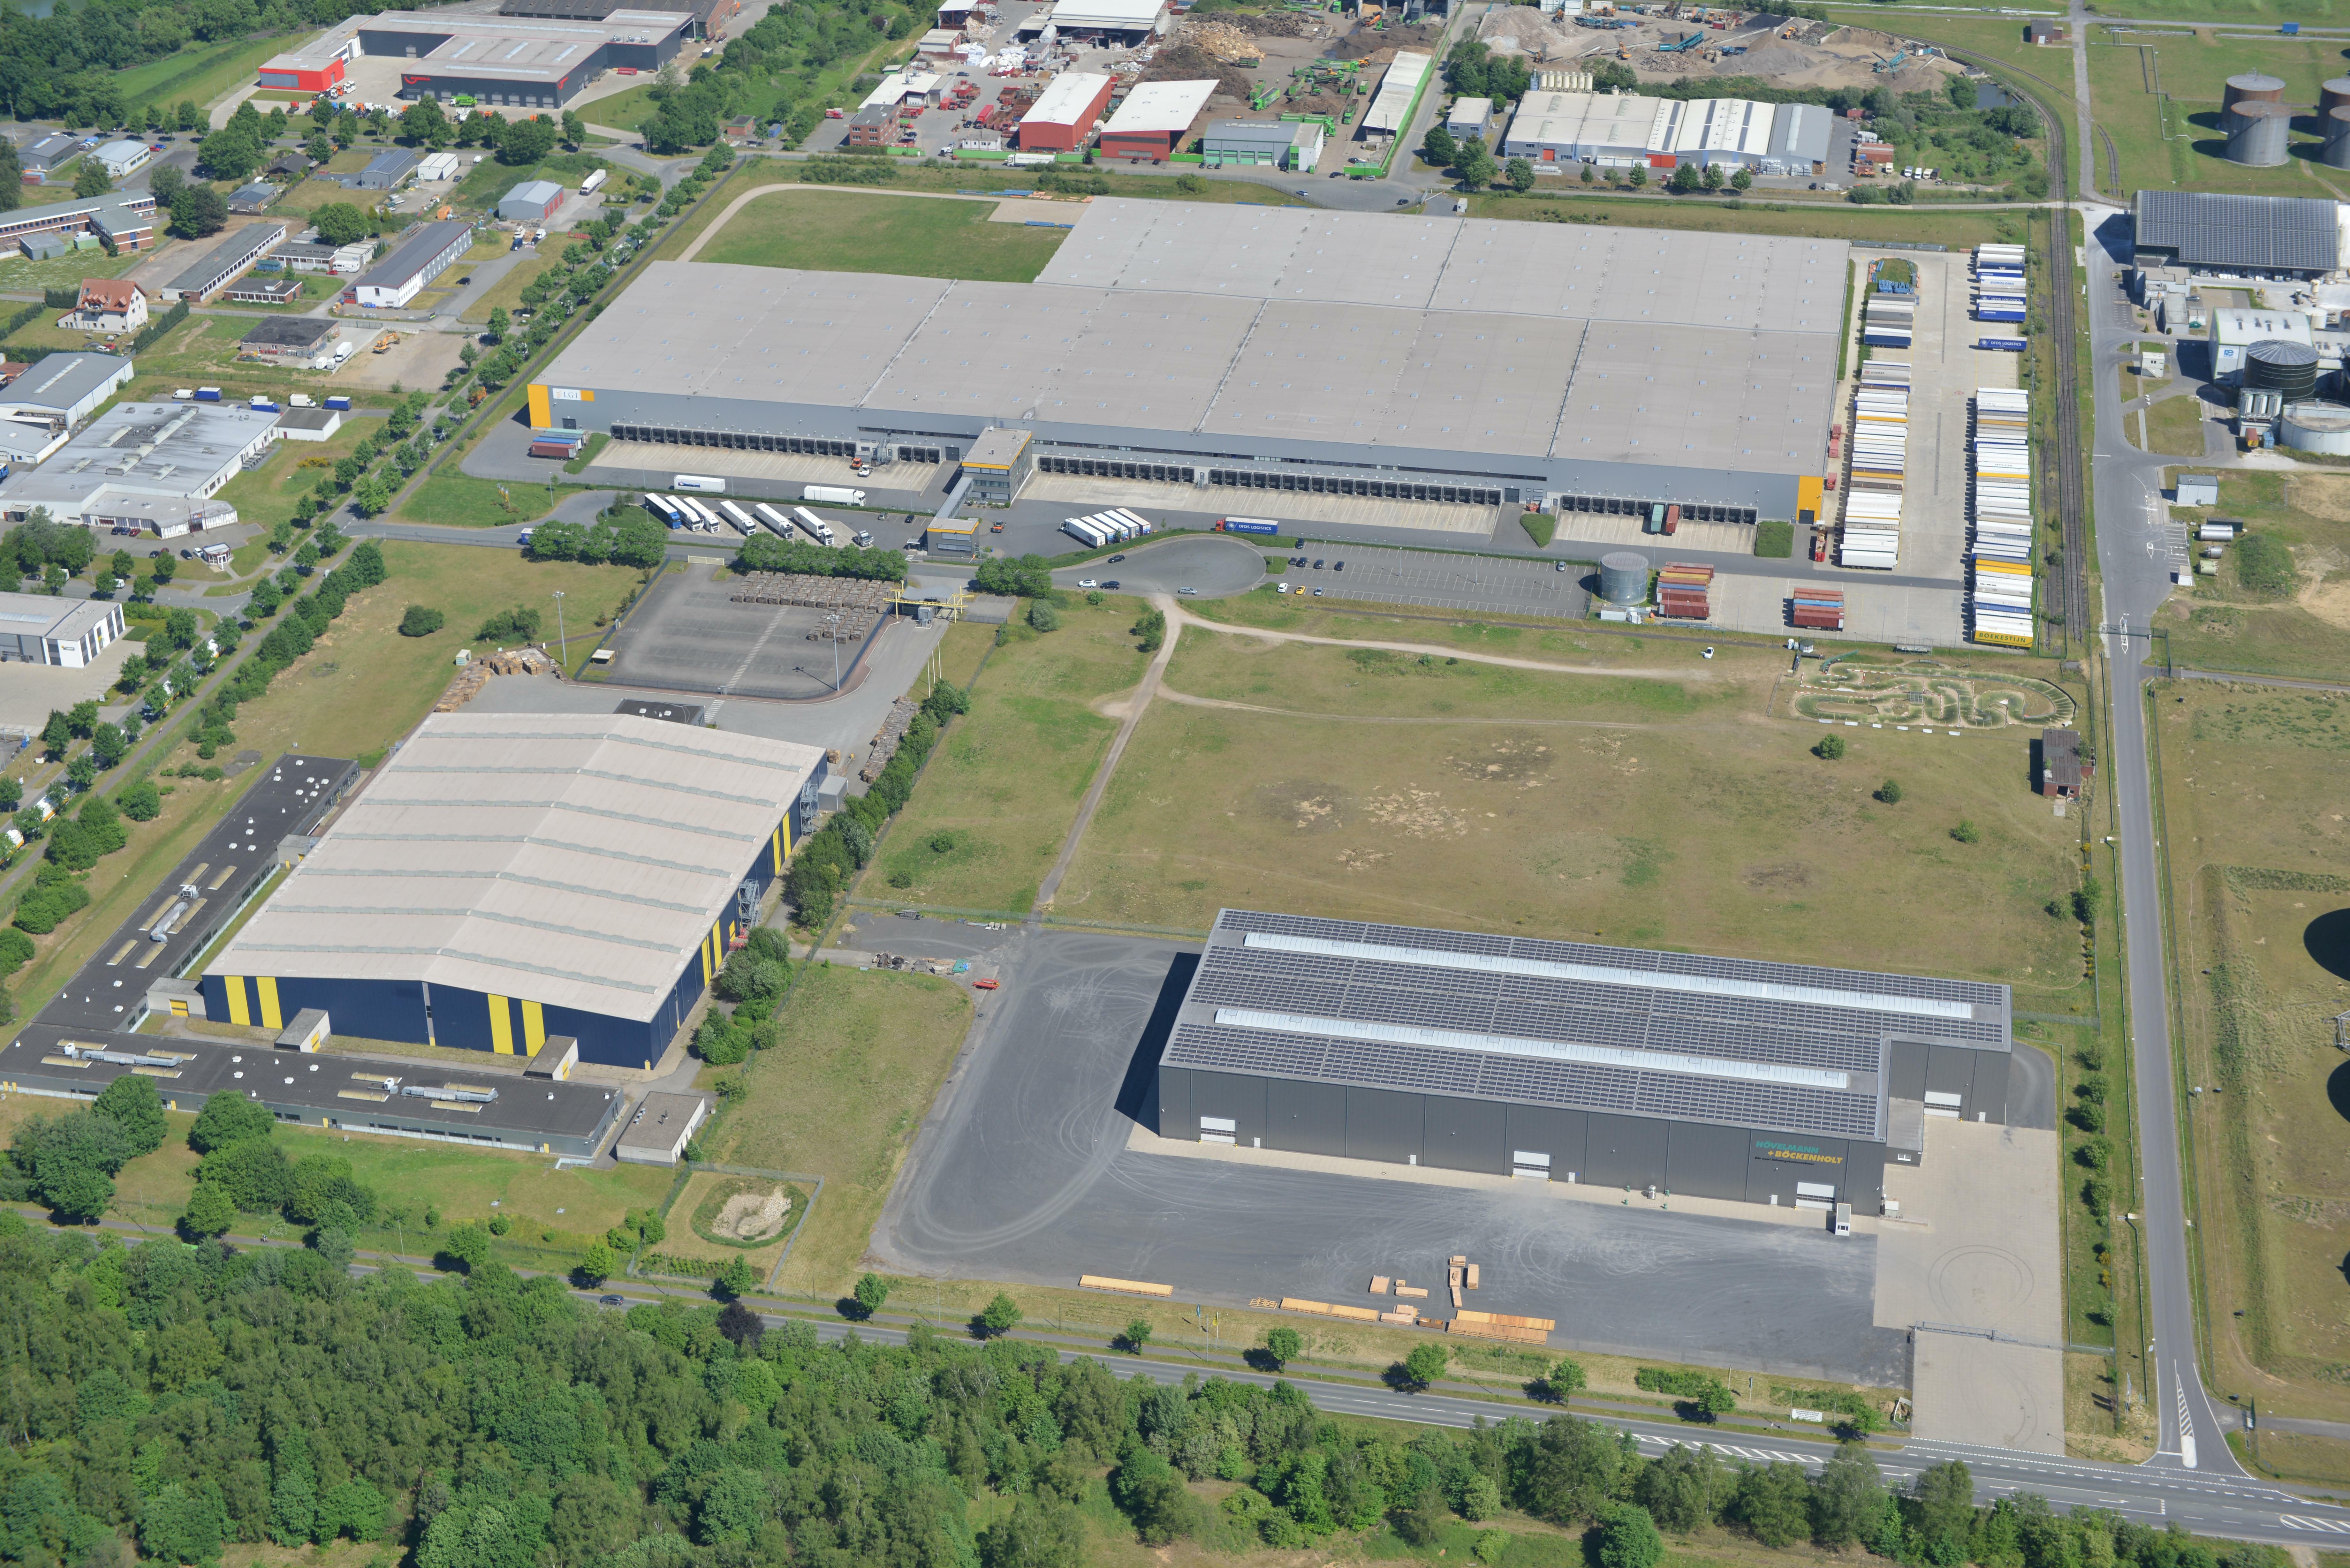 Bird's-eye view Prologis Park Hünxe